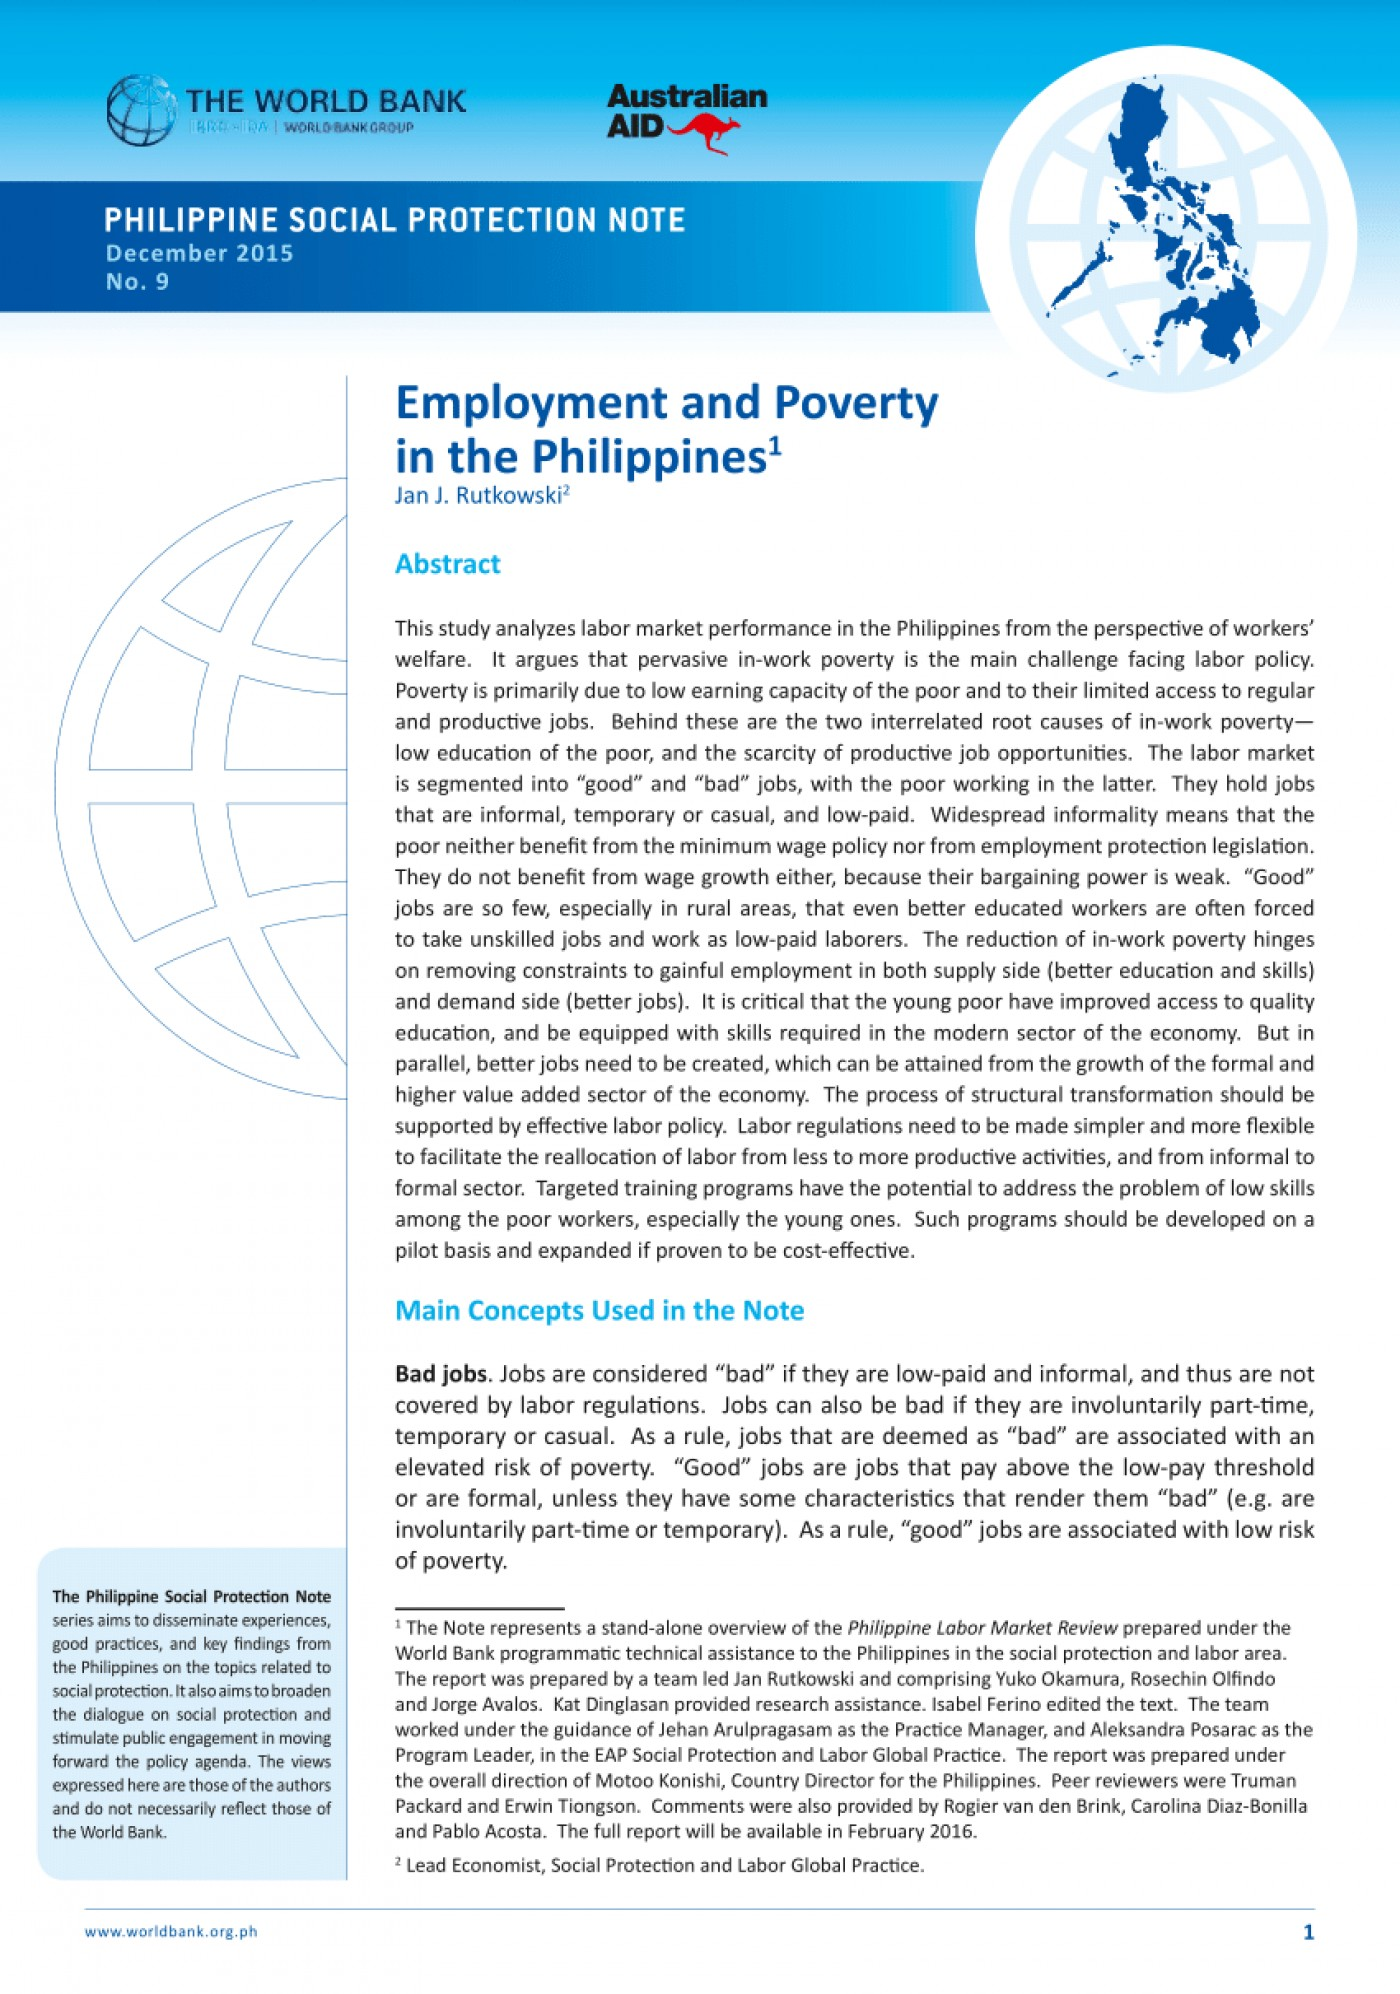 006 Research Paper Largepreview Poverty In The Philippines Impressive Pdf 1400